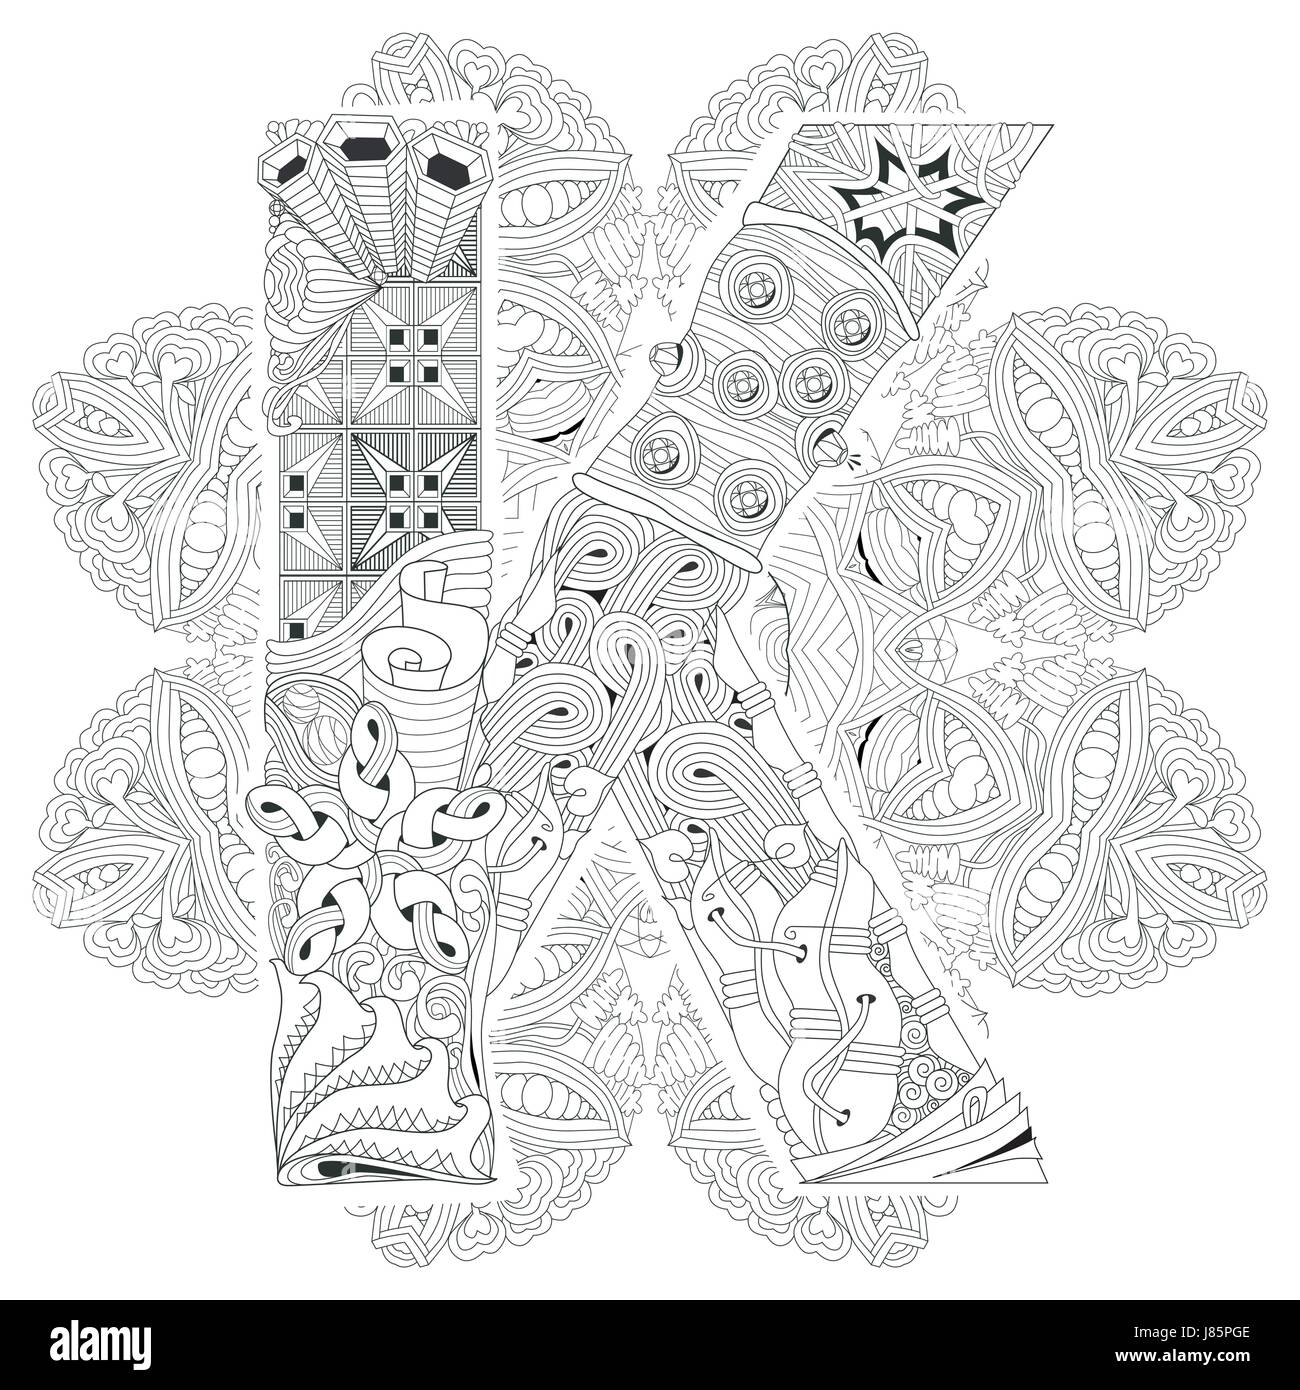 Hand-painted art design. Adult anti-stress coloring page. Black and white hand drawn illustration mandala with letter - Stock Image